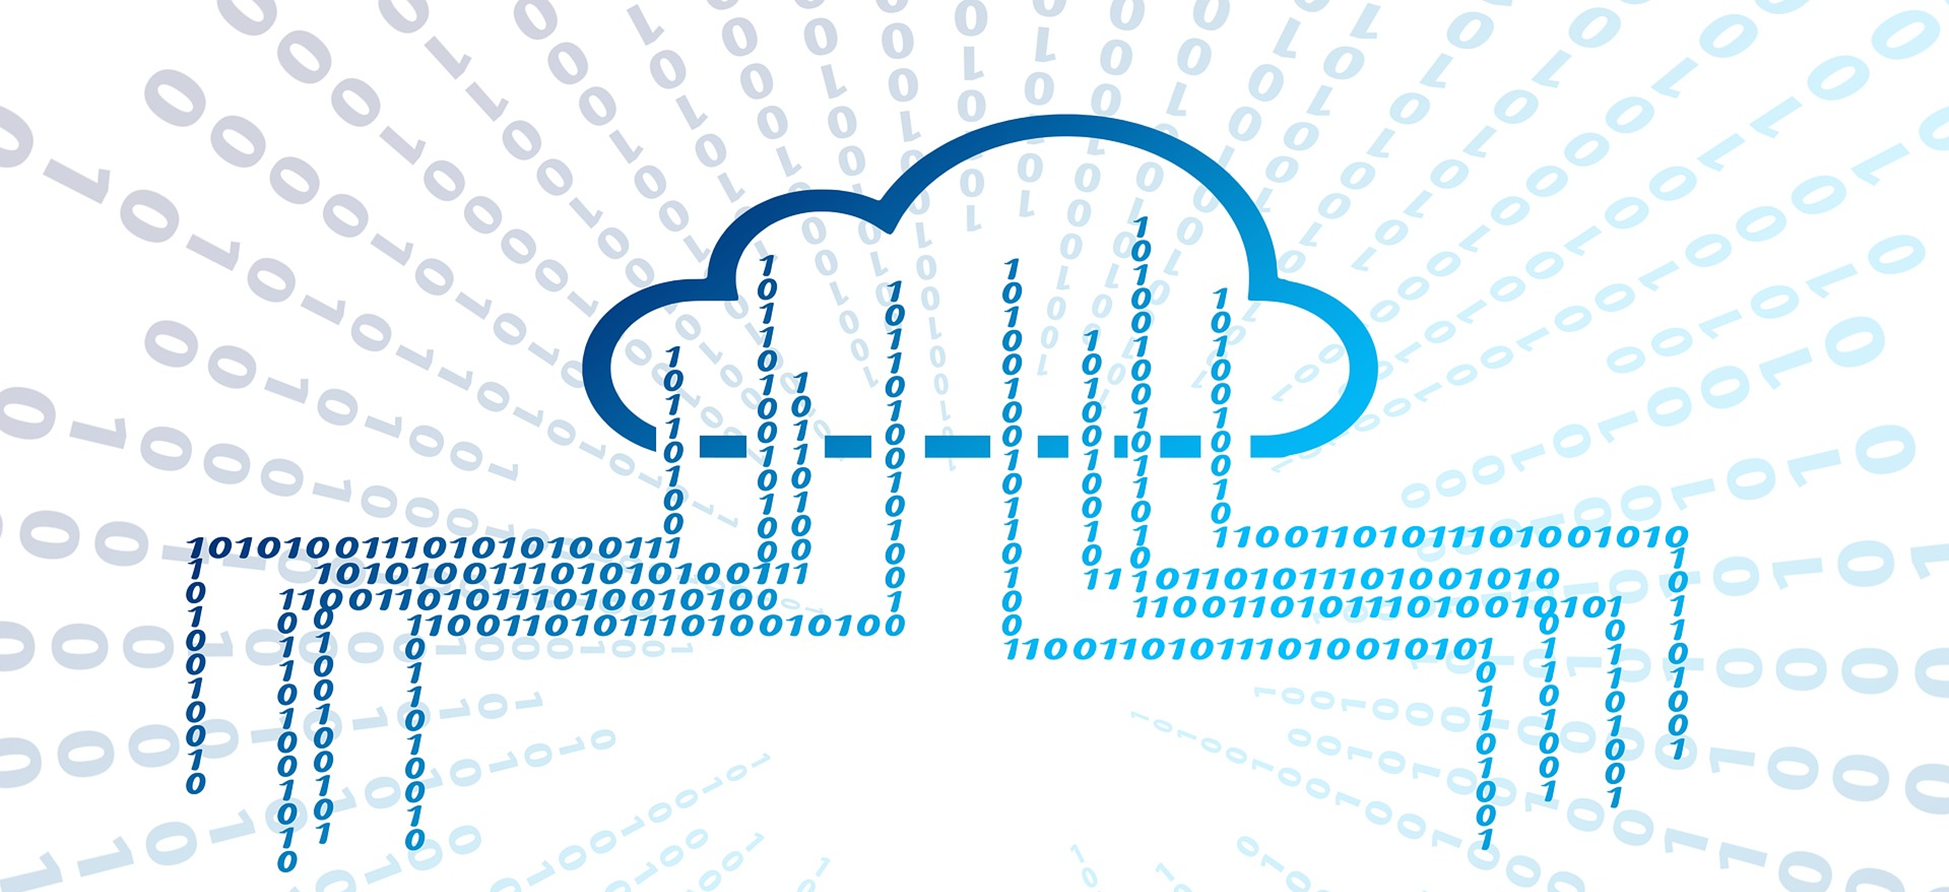 Utilizing the cloud for storing NoSQL data